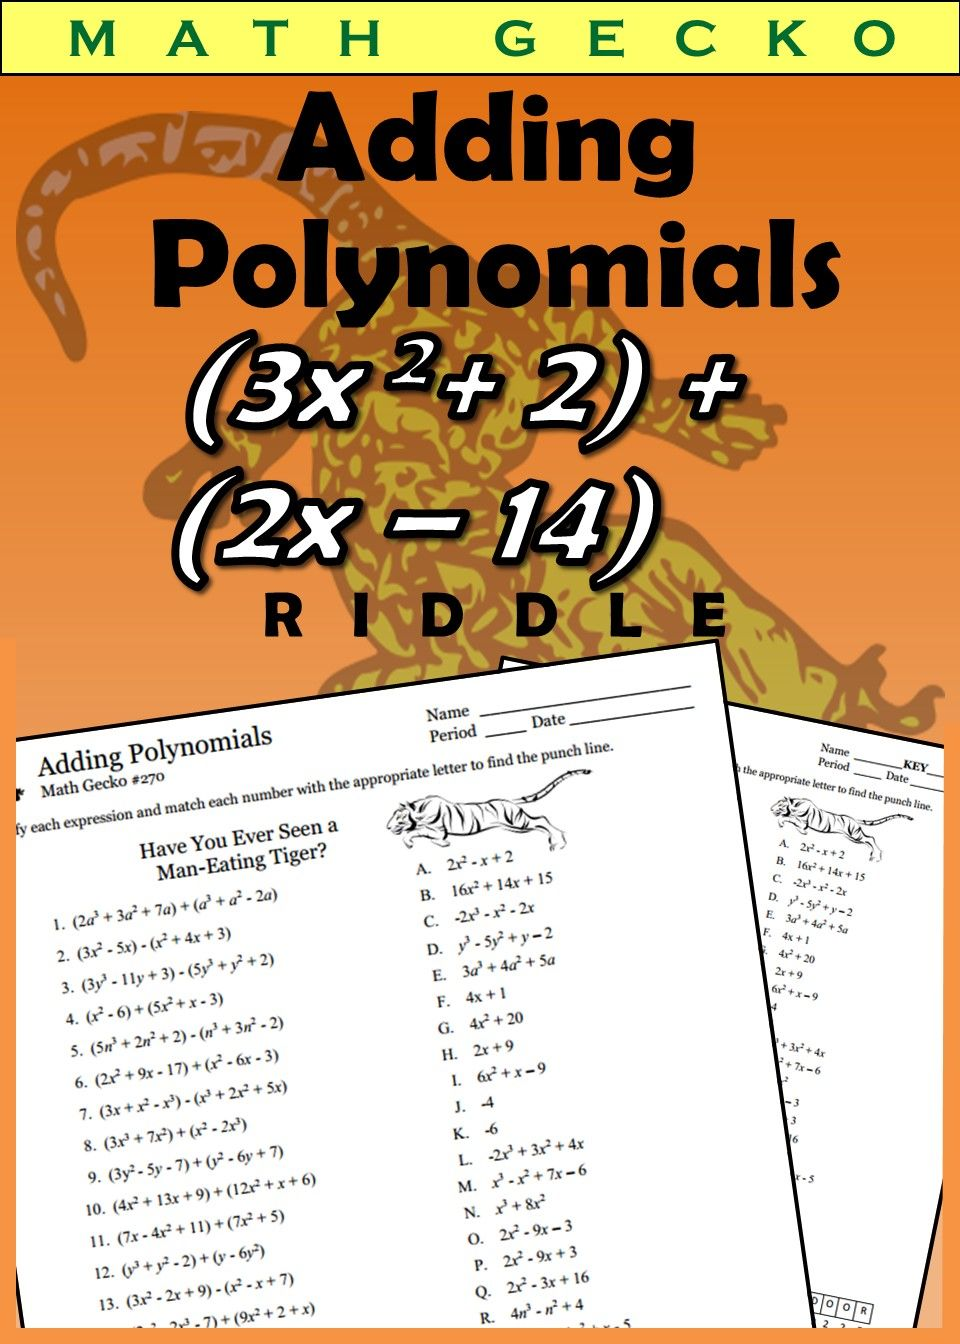 medium resolution of 270 - Adding and Subtracting Polynomials (I) Riddle   Polynomials